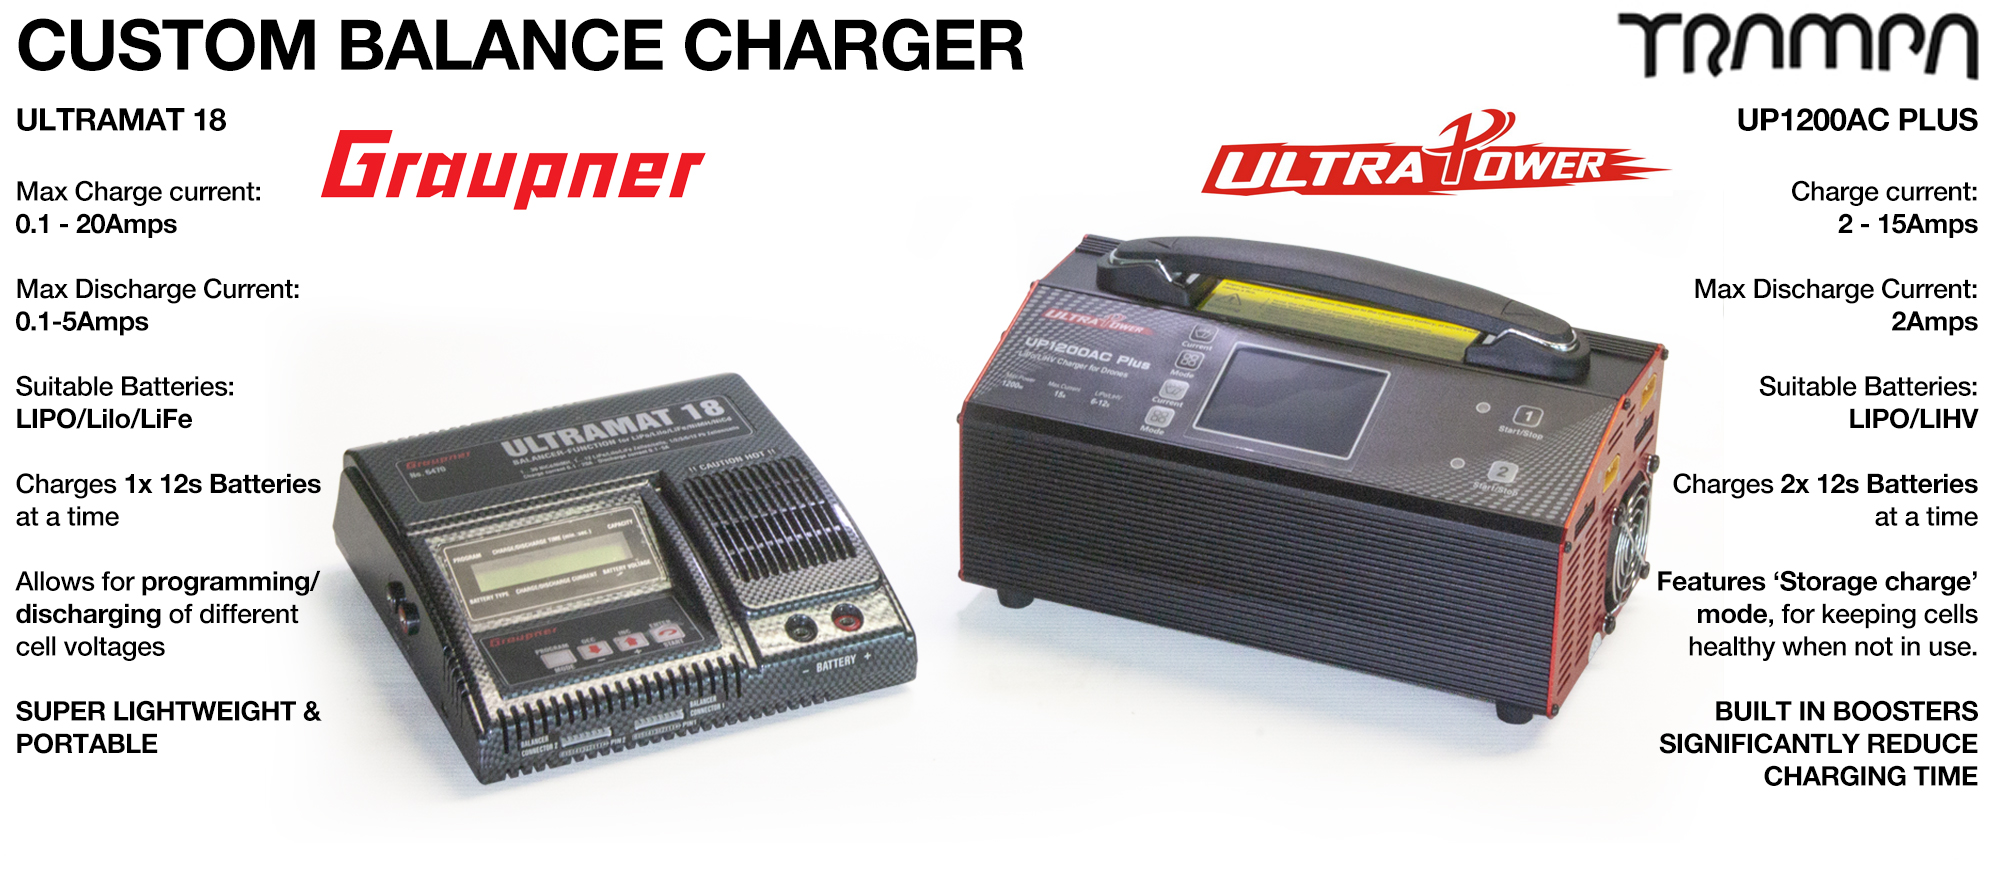 Custom Charger Graupner Ultramat 18 or ULTRAPOWER UP1200AC - Small & Portable or Super quick Charging!